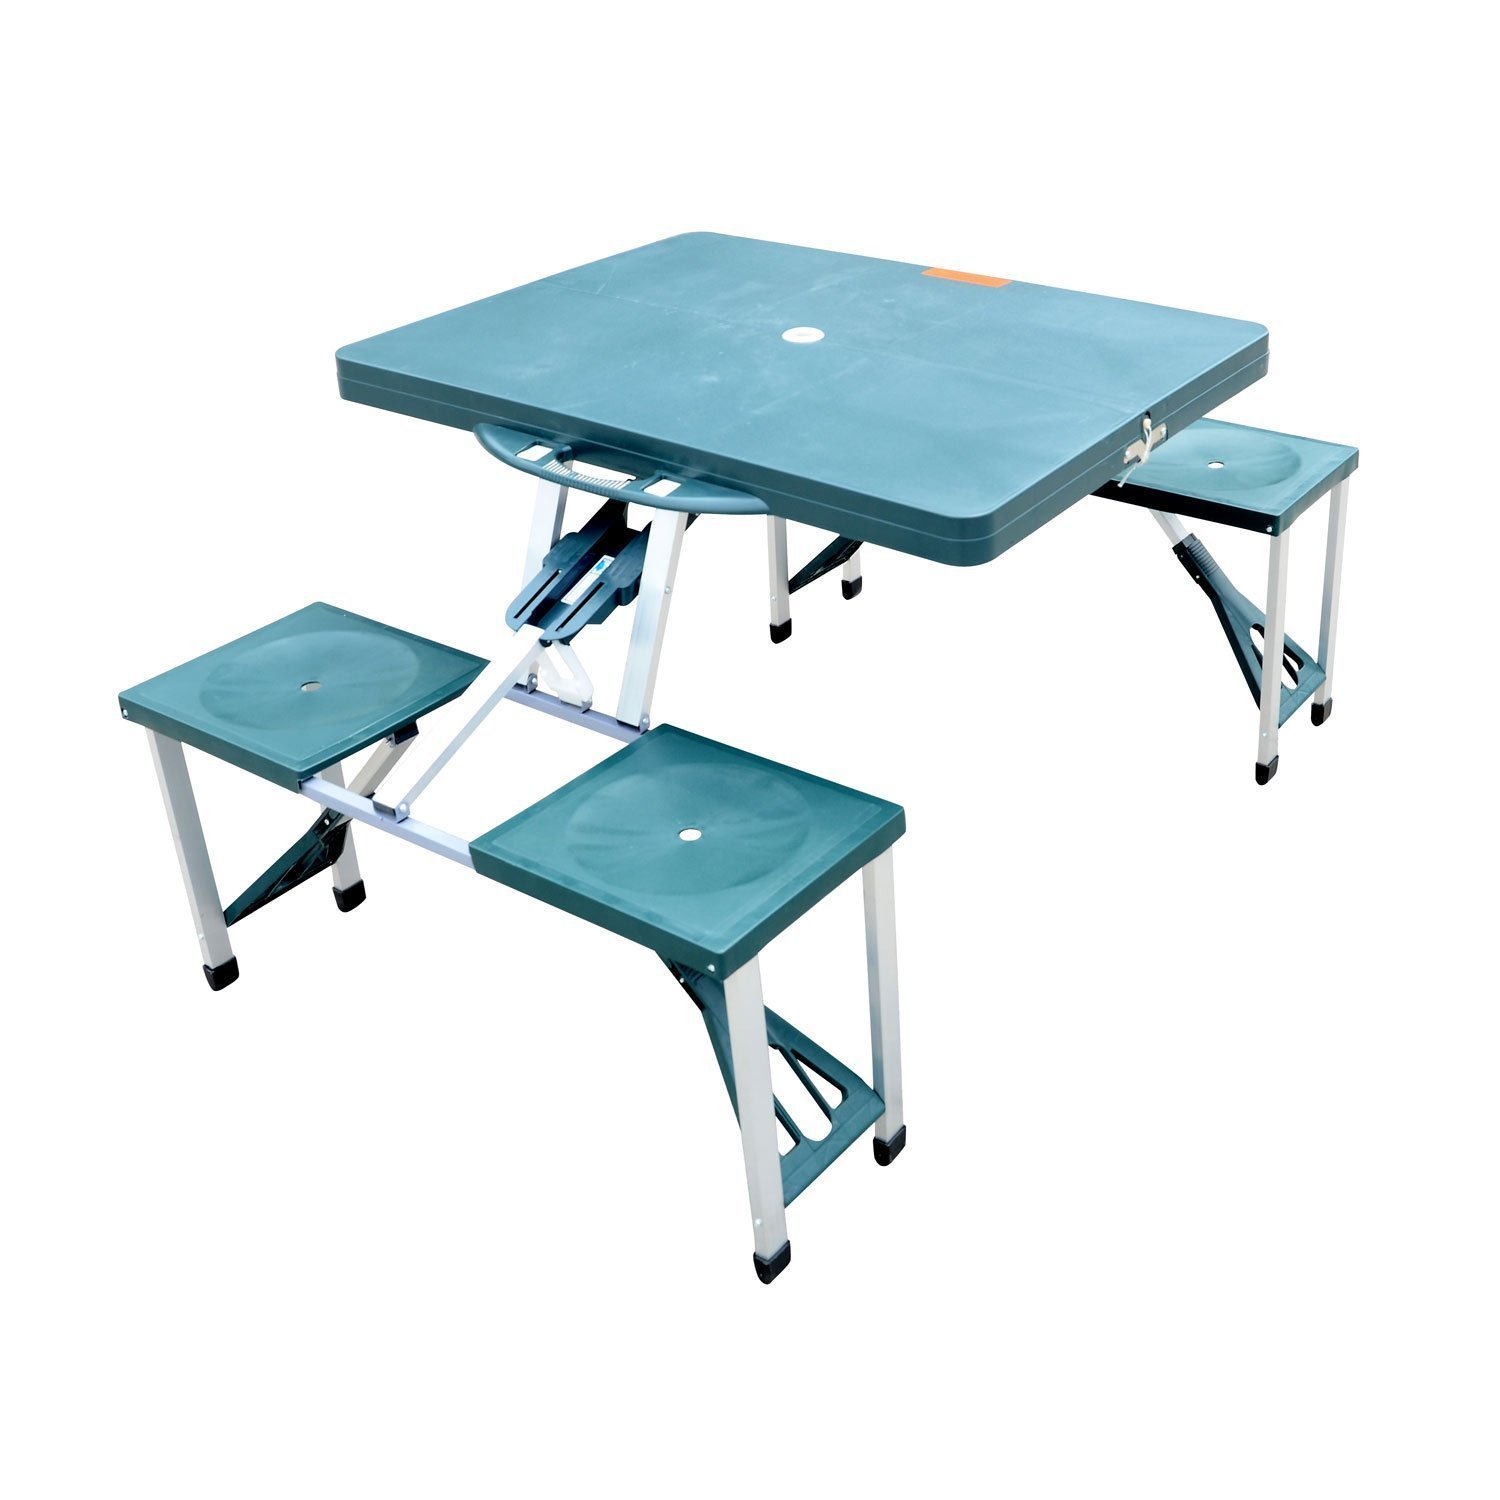 folding camping table and chairs amazon.com : outsunny portable folding outdoor camp suitcase picnic table  with 4 ercxhum